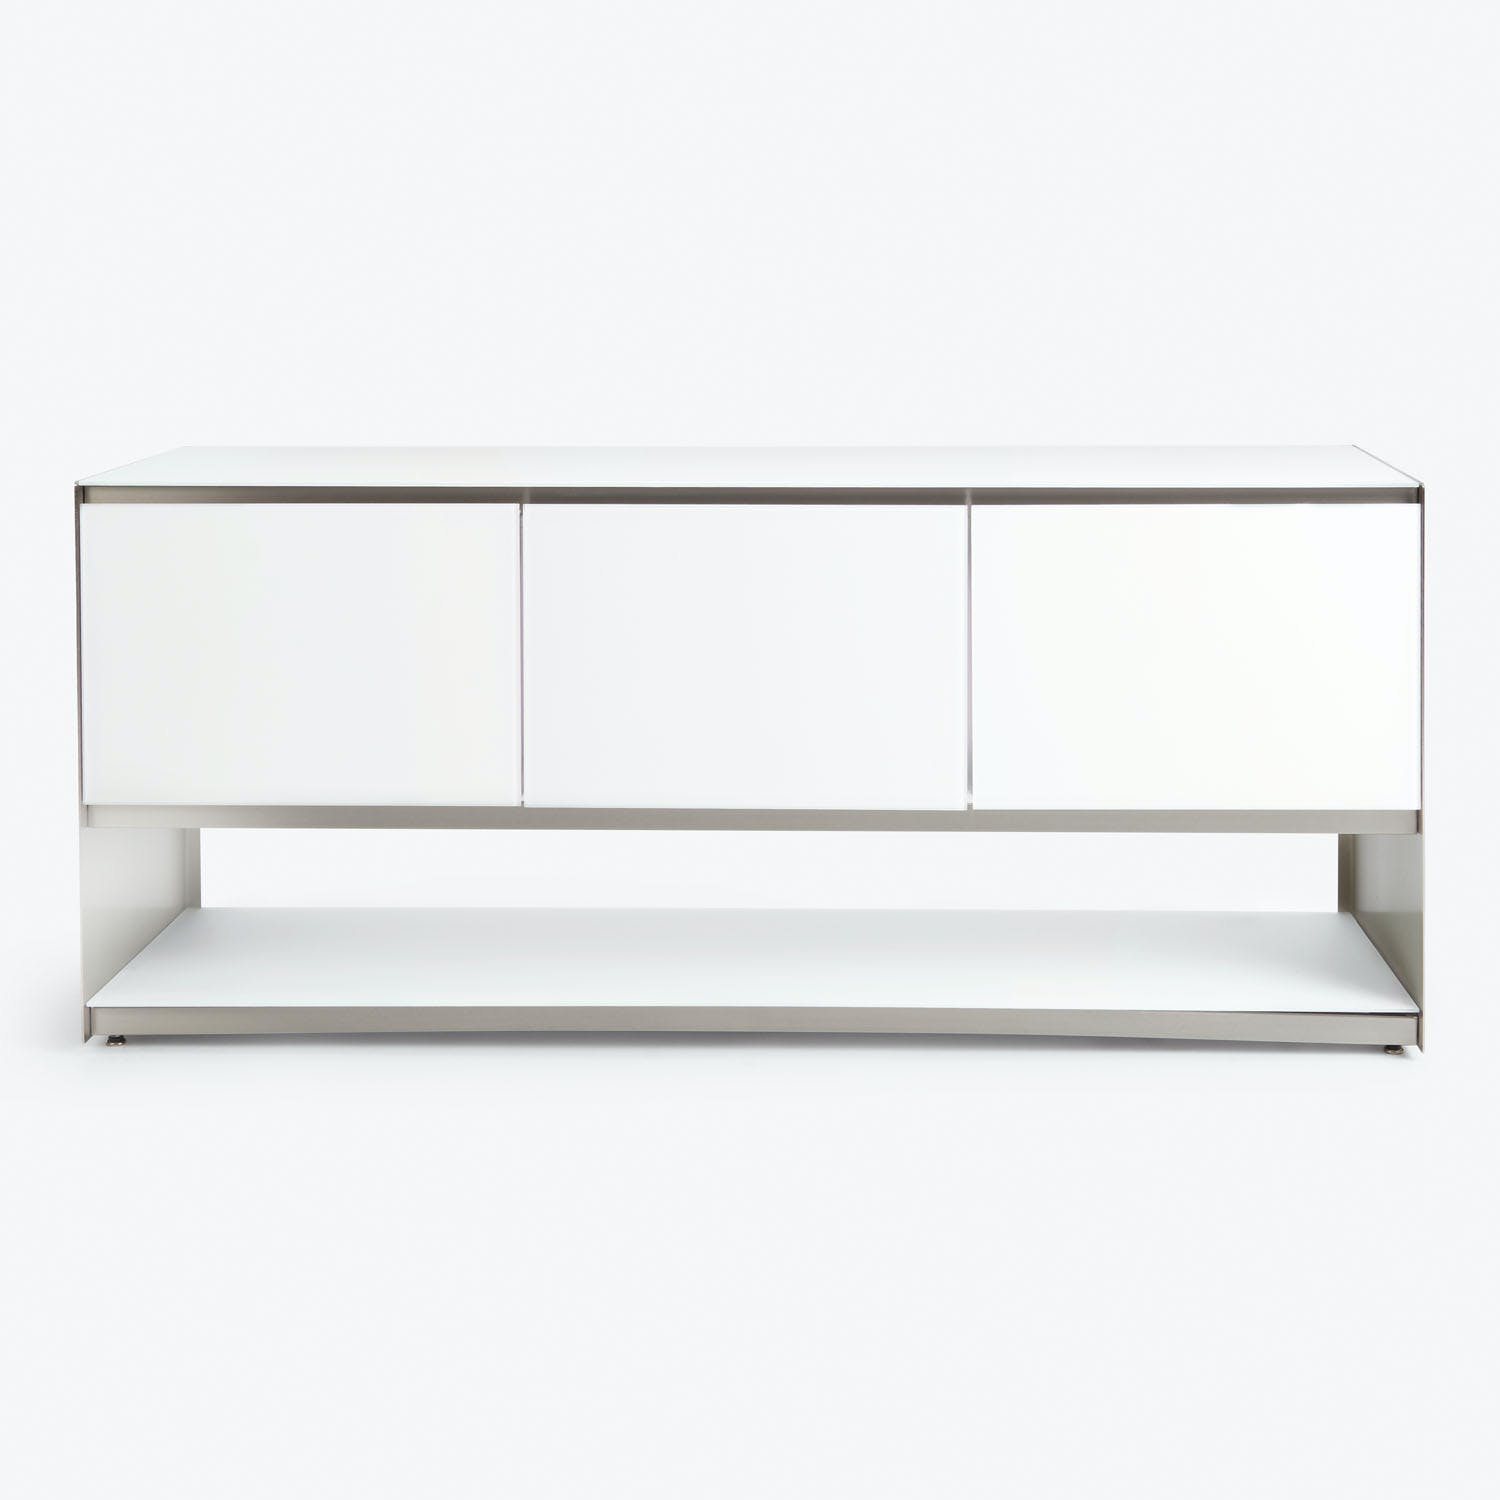 Product Image - Gallerist Royale Sideboard White Steel